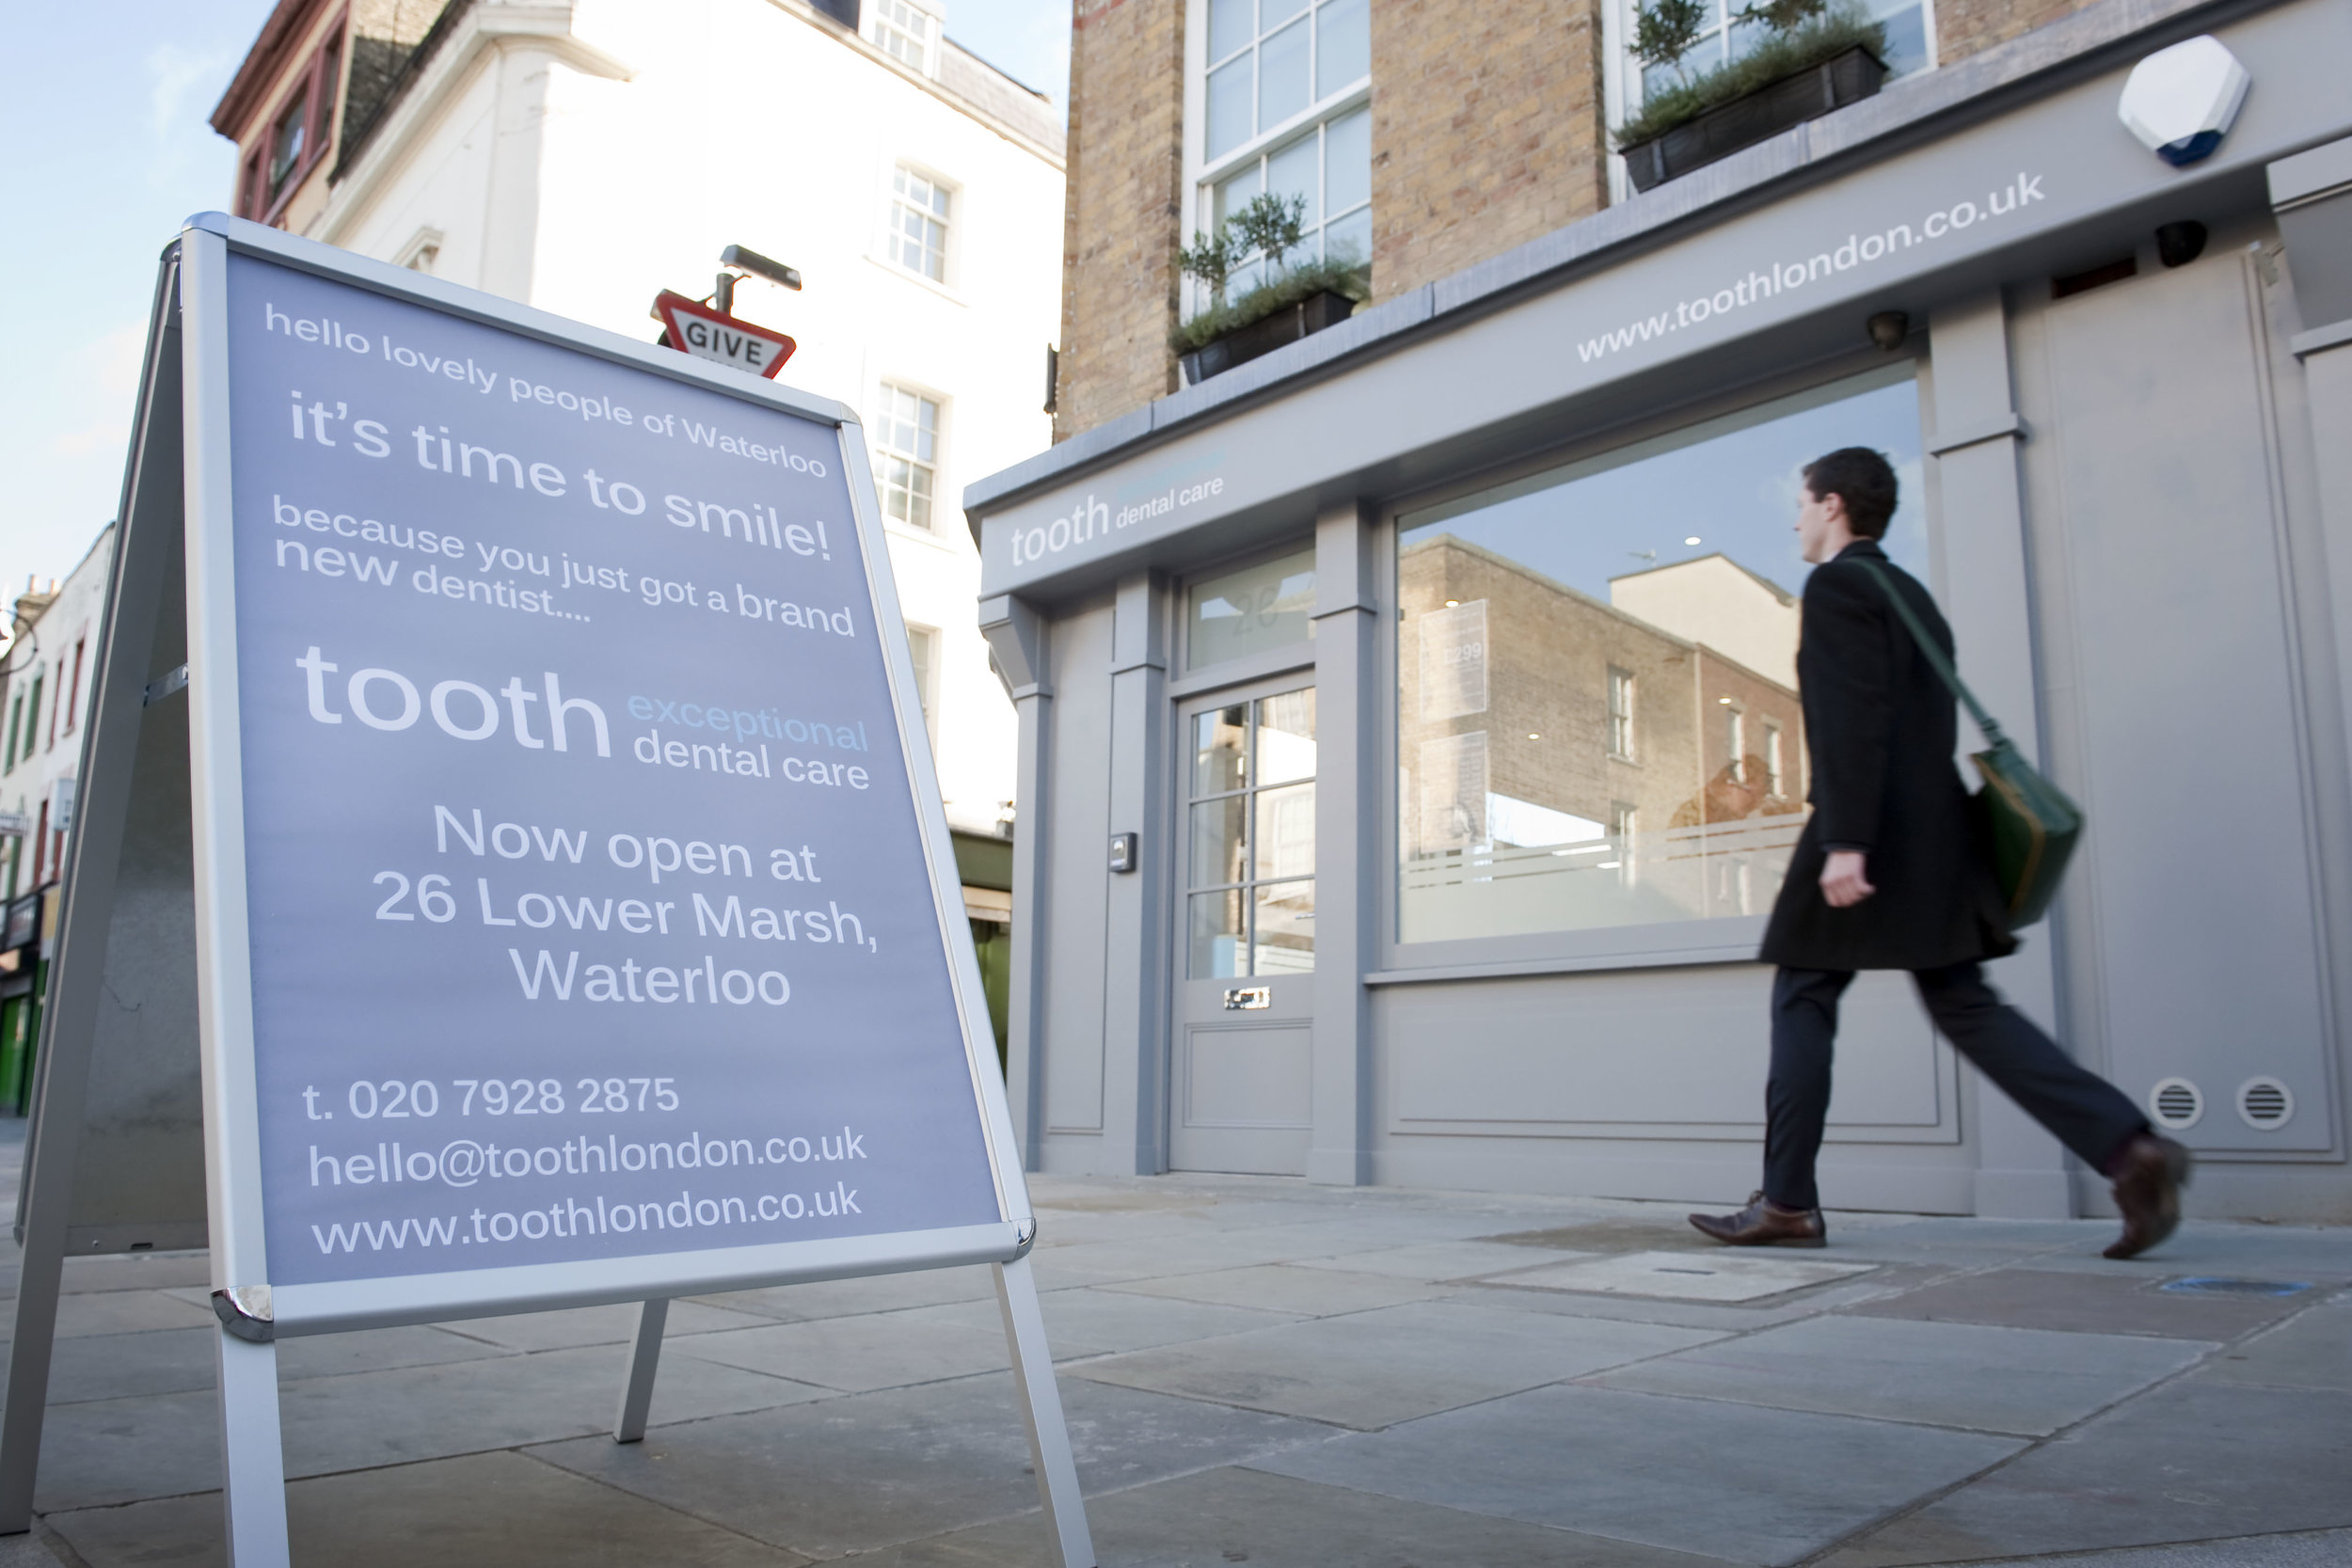 tooth dental surgery, dentist and hygienist lower marsh, waterloo, London